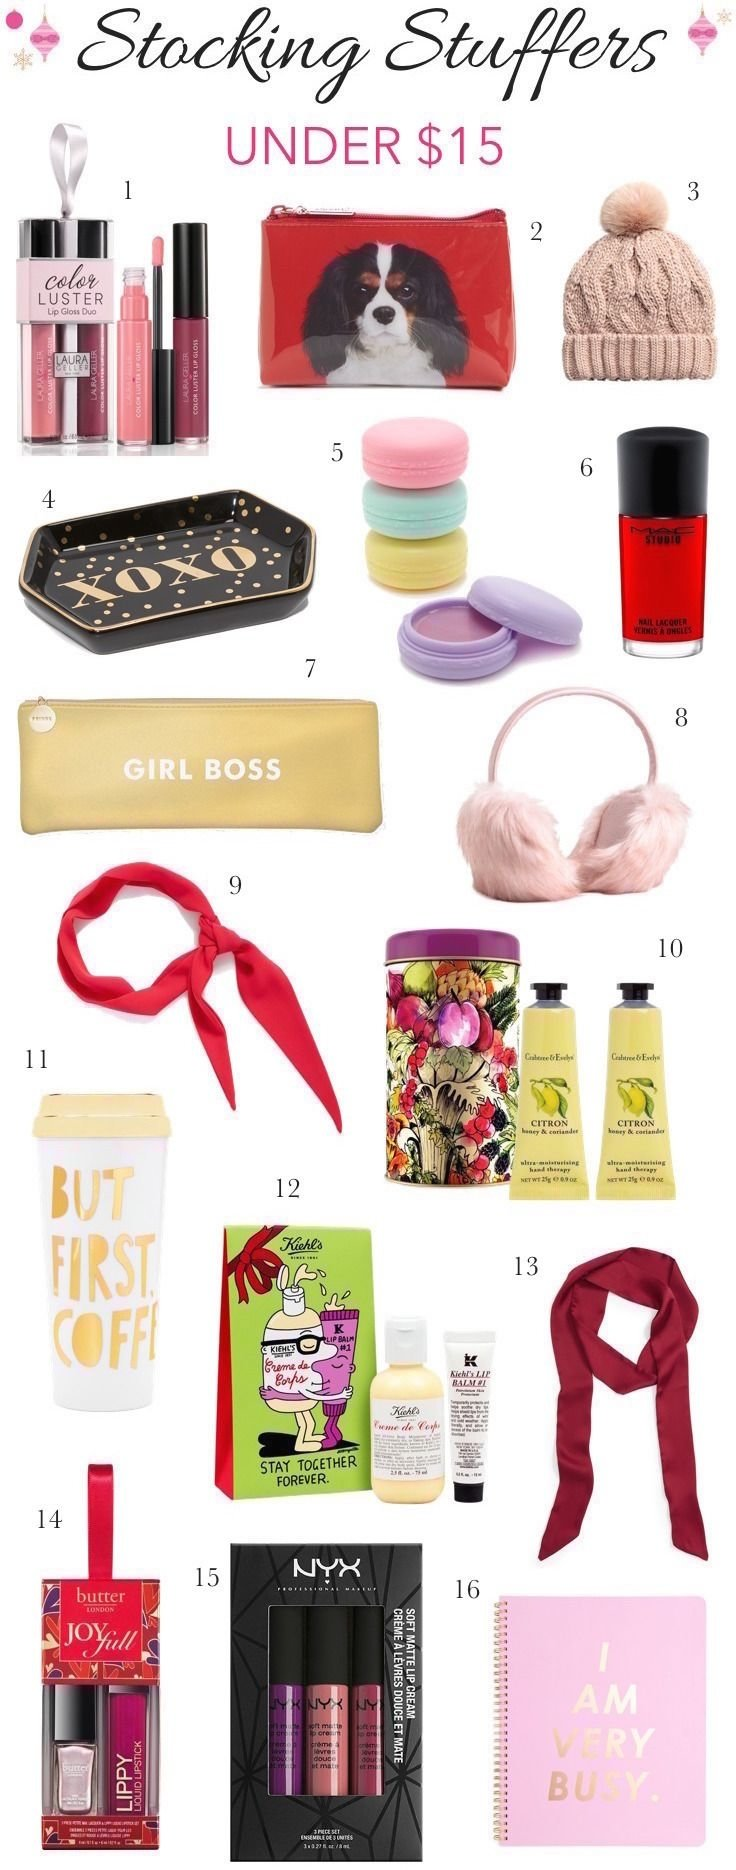 10 Wonderful Stocking Stuffer Ideas For Girlfriend pretty little things stylish stocking stuffers for her all under